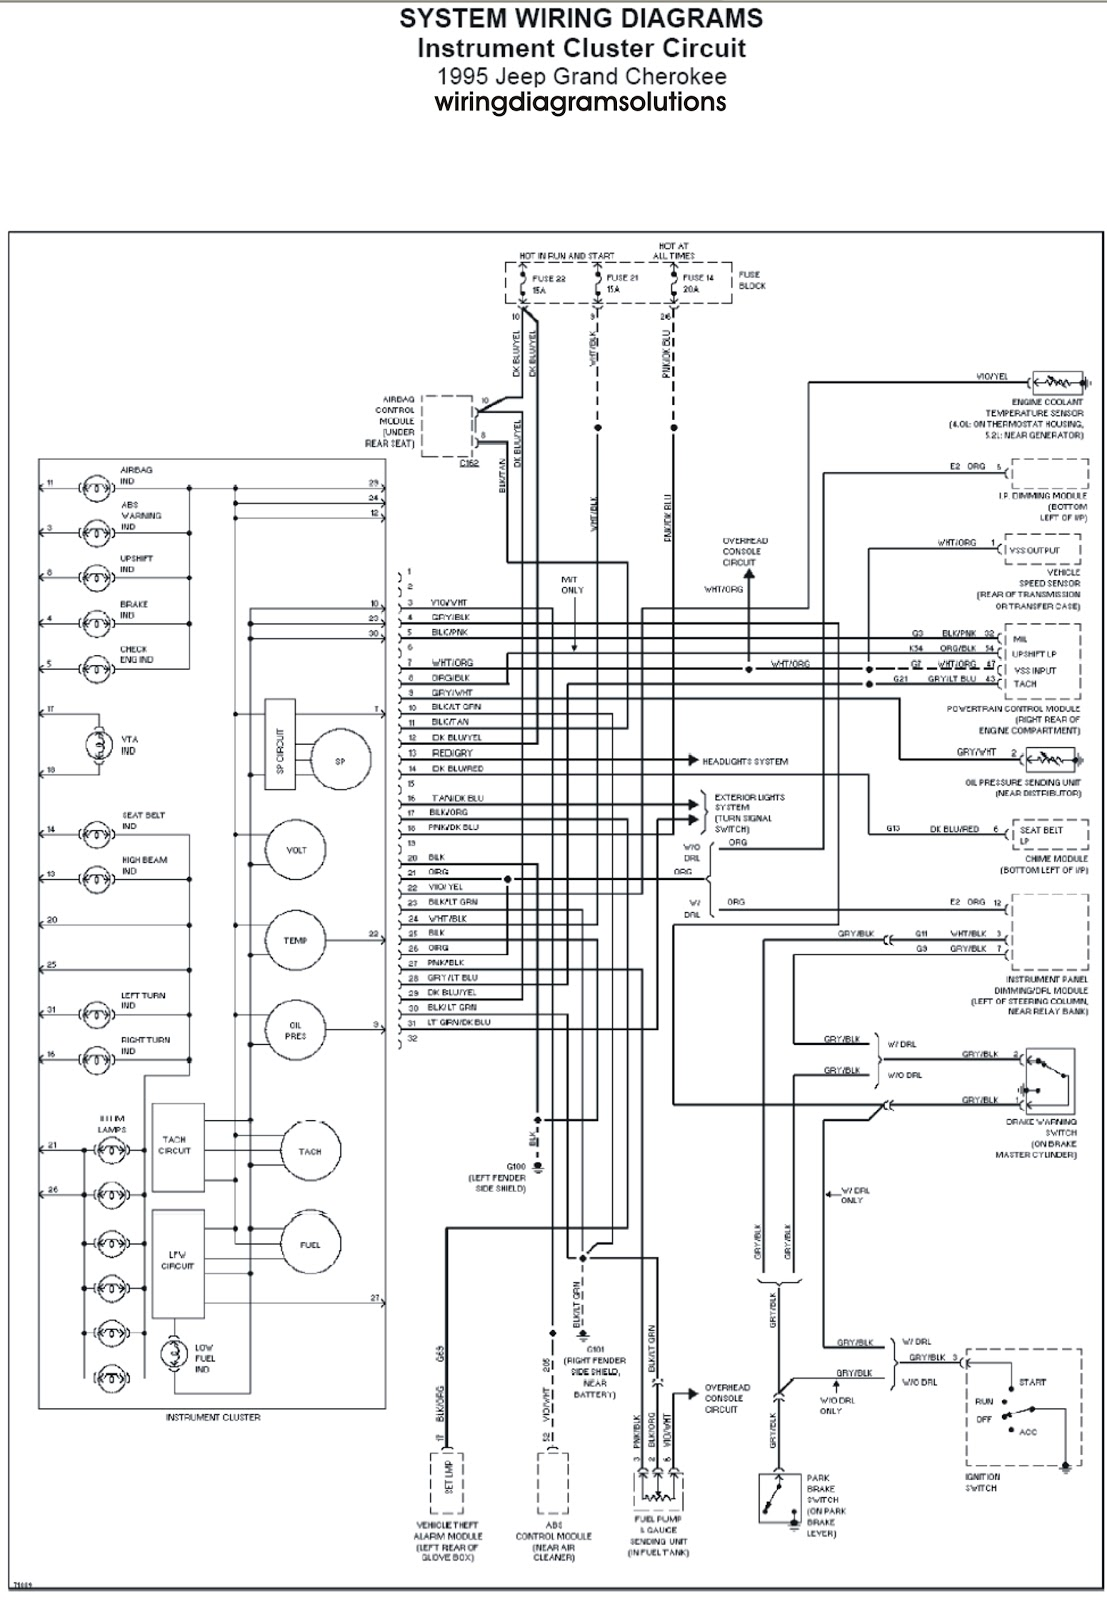 Jeep Cherokee Wiring Diagram Jeep Grand Cherokee